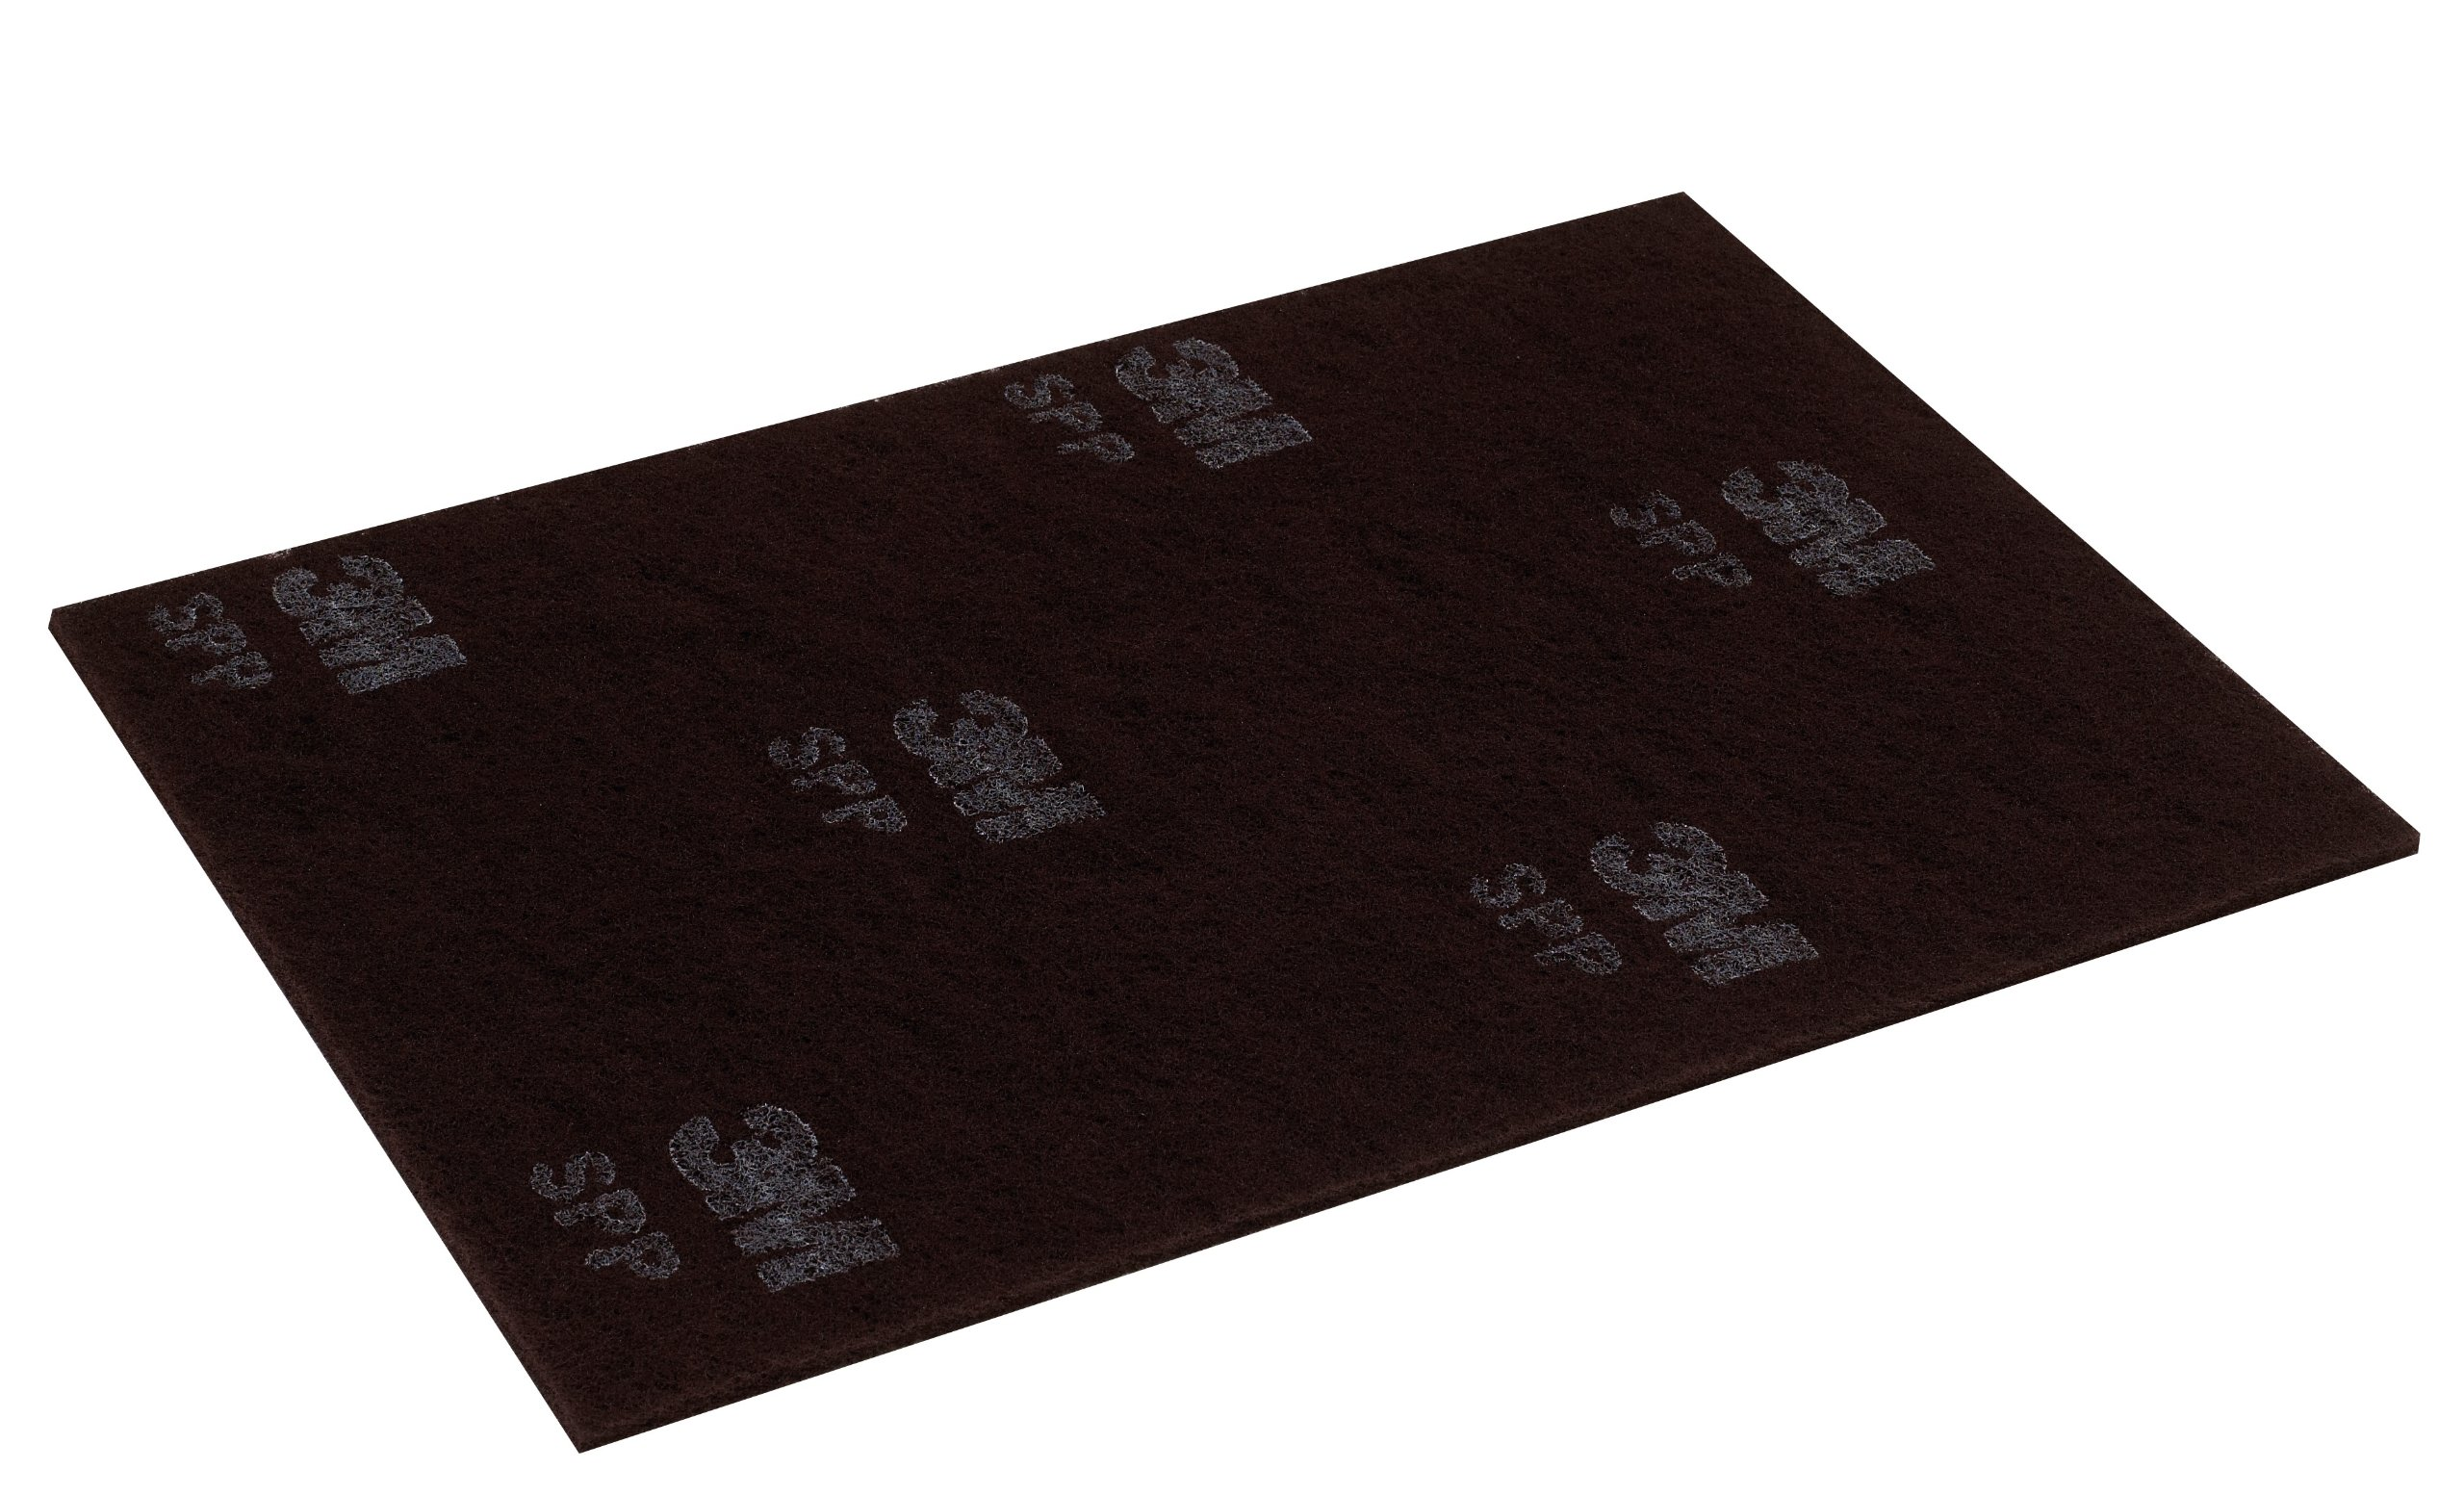 Scotch-Brite(TM) Surface Preparation Pad SPP14x28, 14 x 28 in, (Case of 10) by Unknown